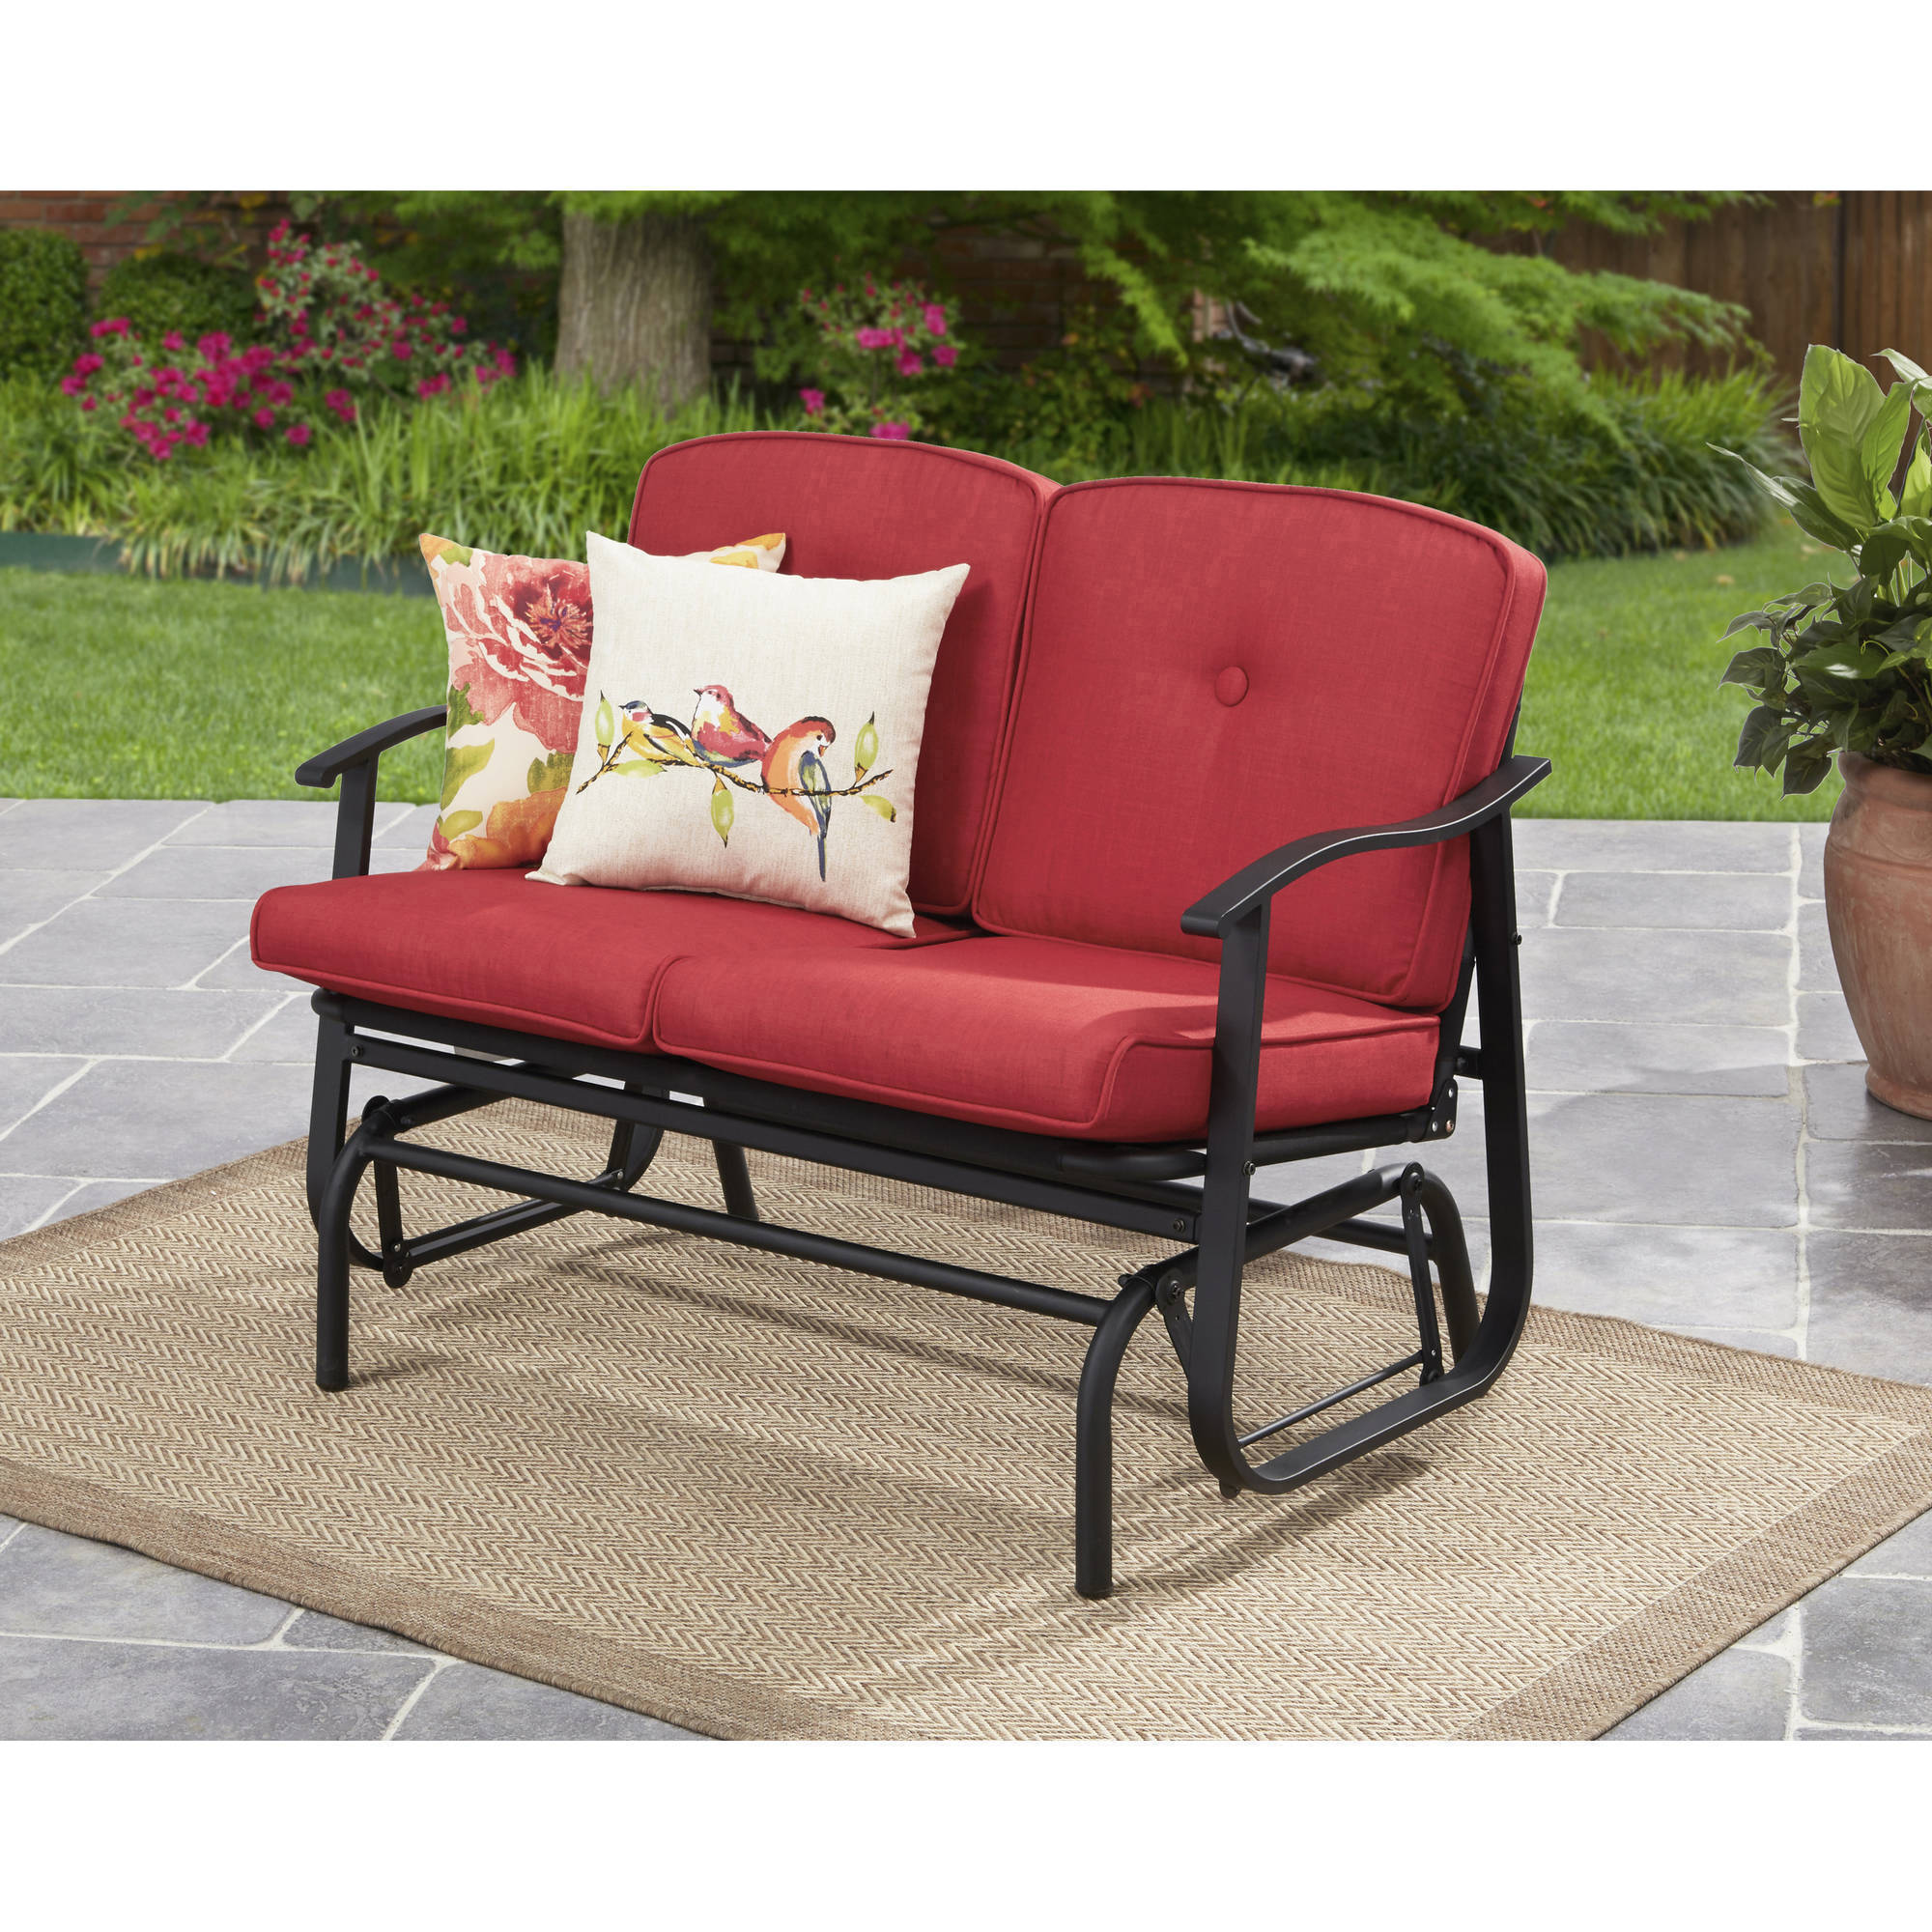 Mainstays belden park outdoor loveseat glider with cushion walmart com